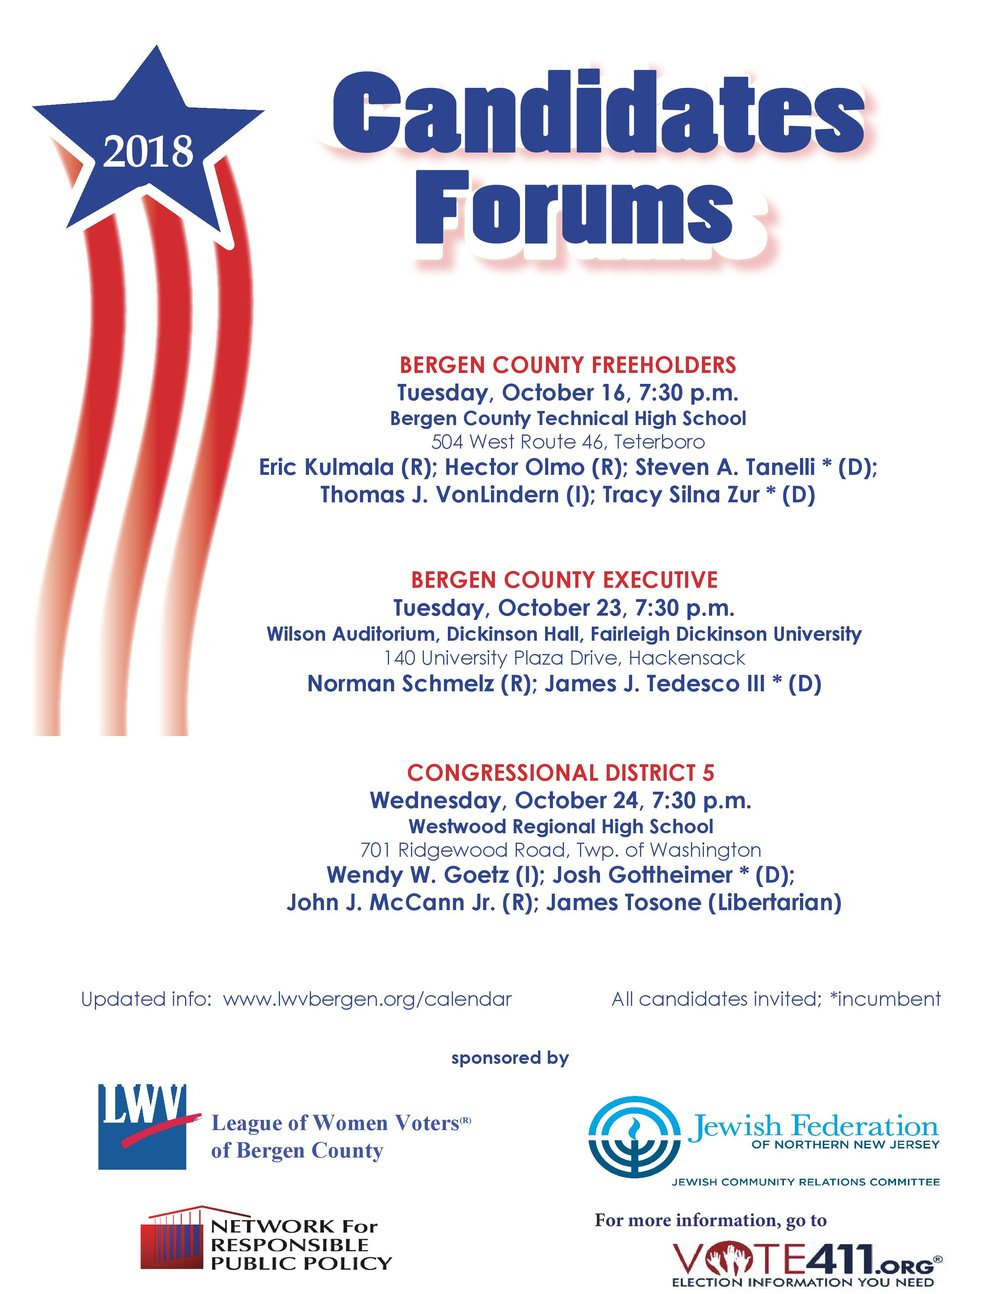 Candidate Forum - 5th Congressional District - Oct 24 - Westwood-page-001.jpg